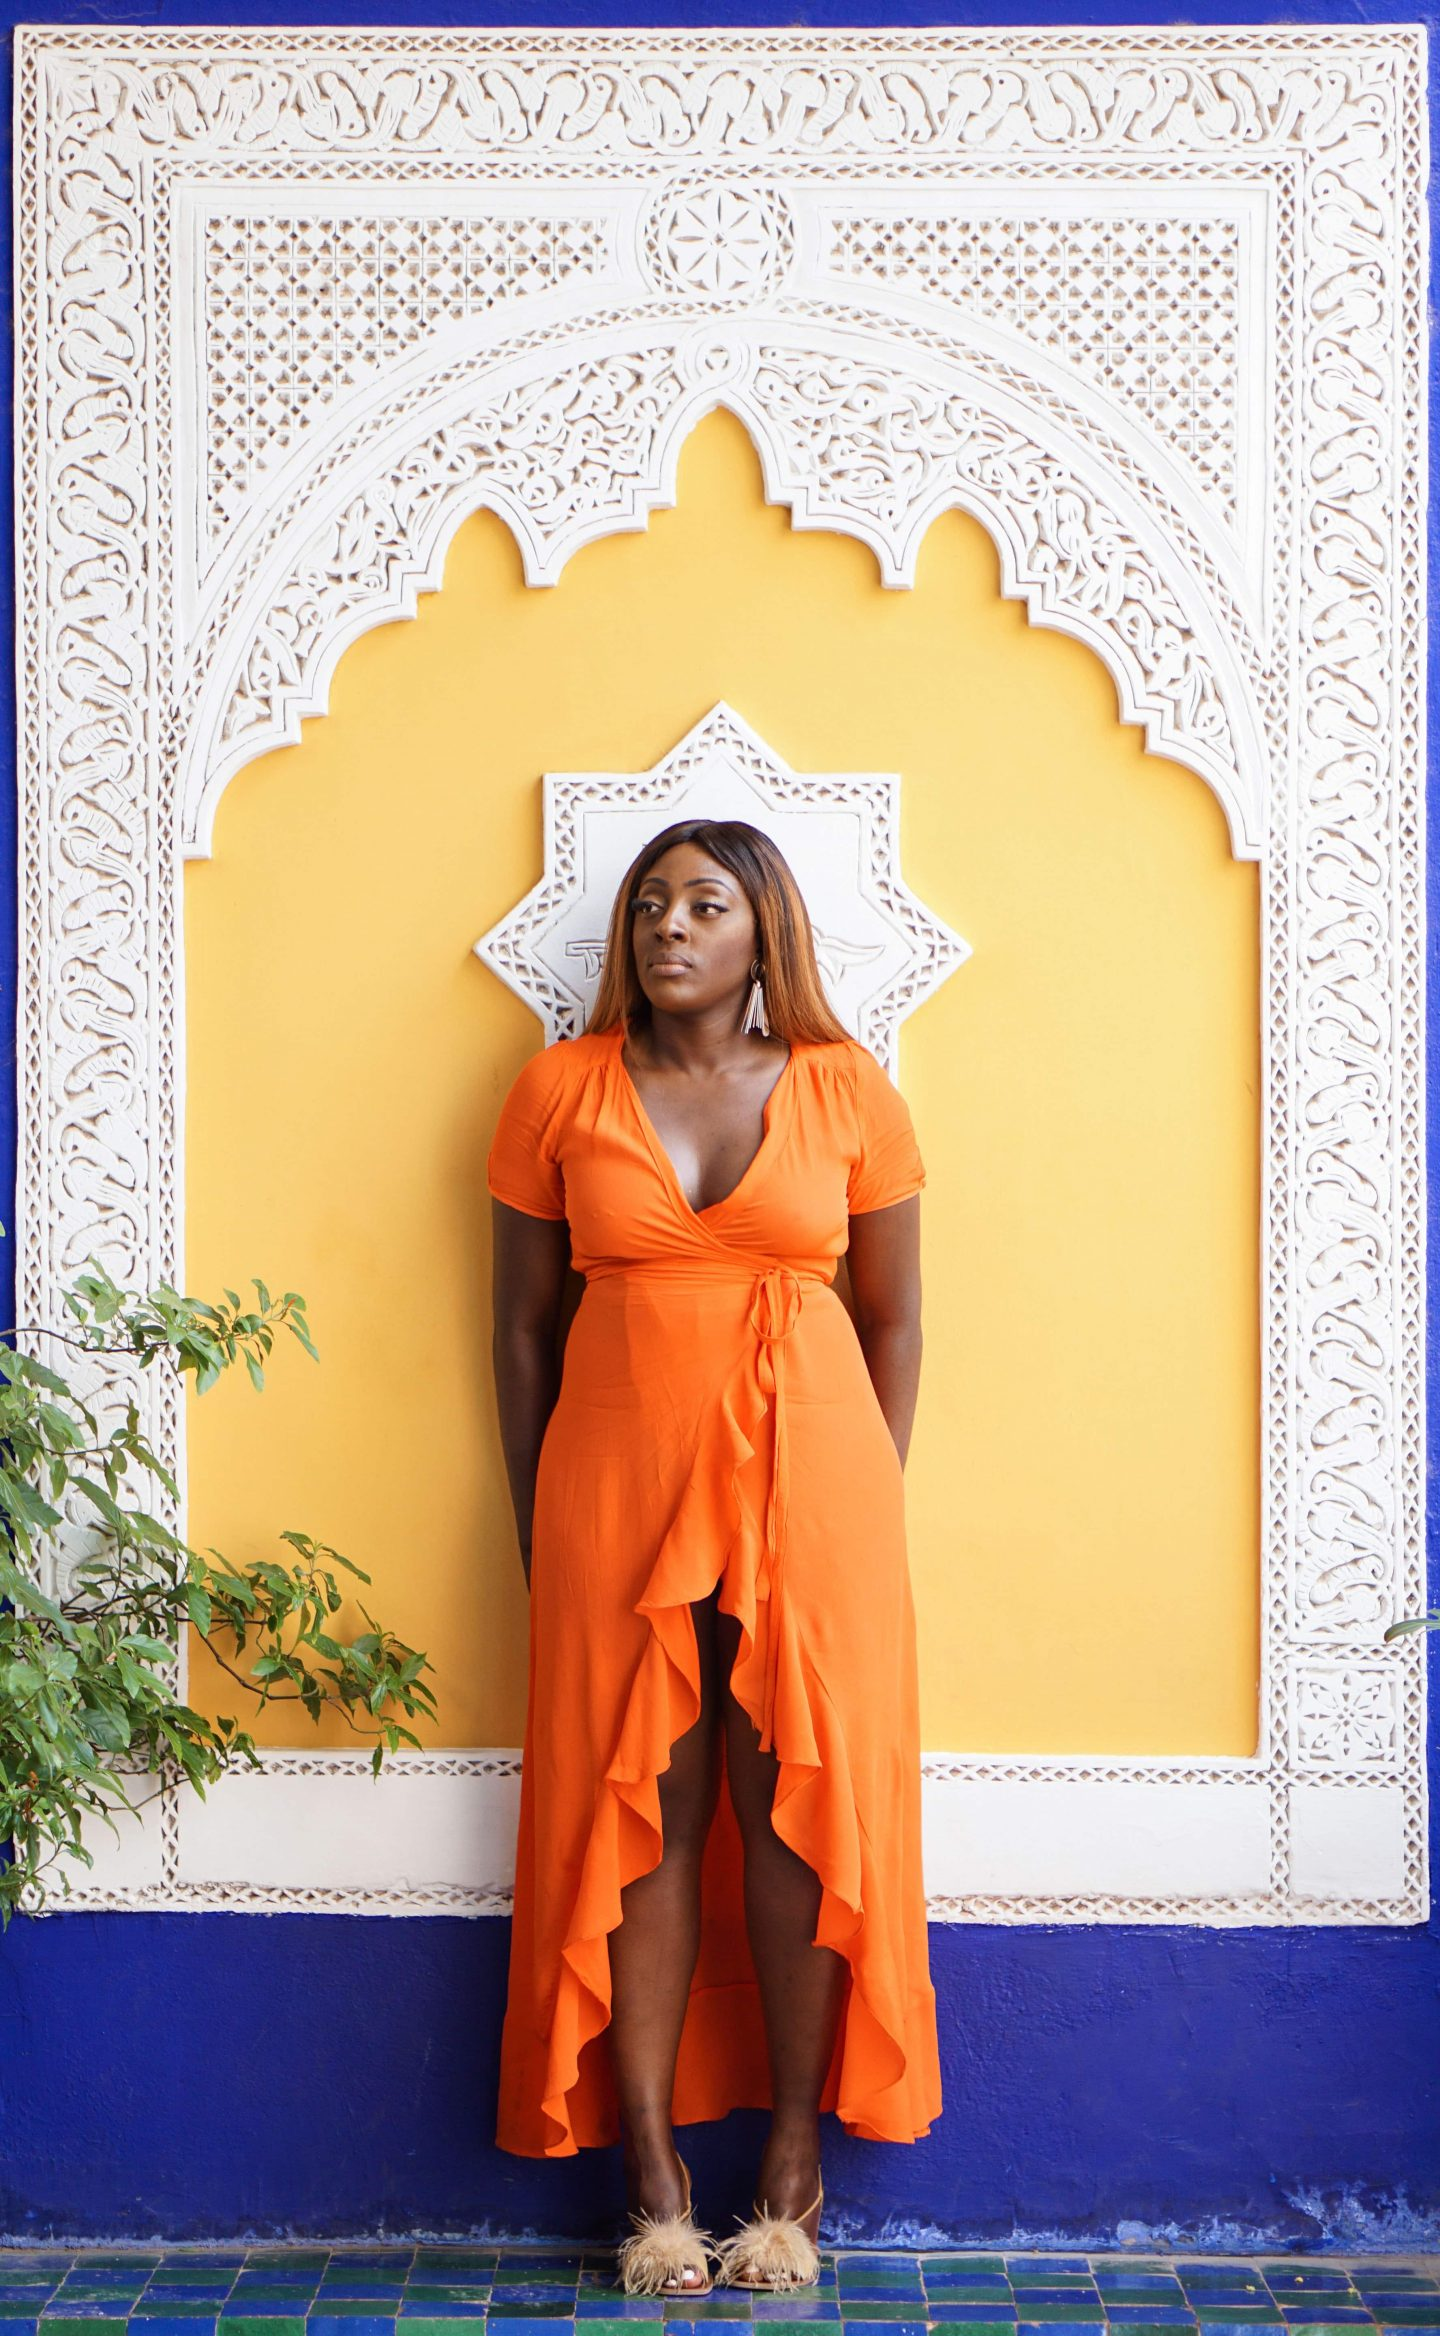 Marrakech - Le Jardin Majorelle Yves Saint Laurent 7 - Orange maxi dress from ASOS - Style and the Sass